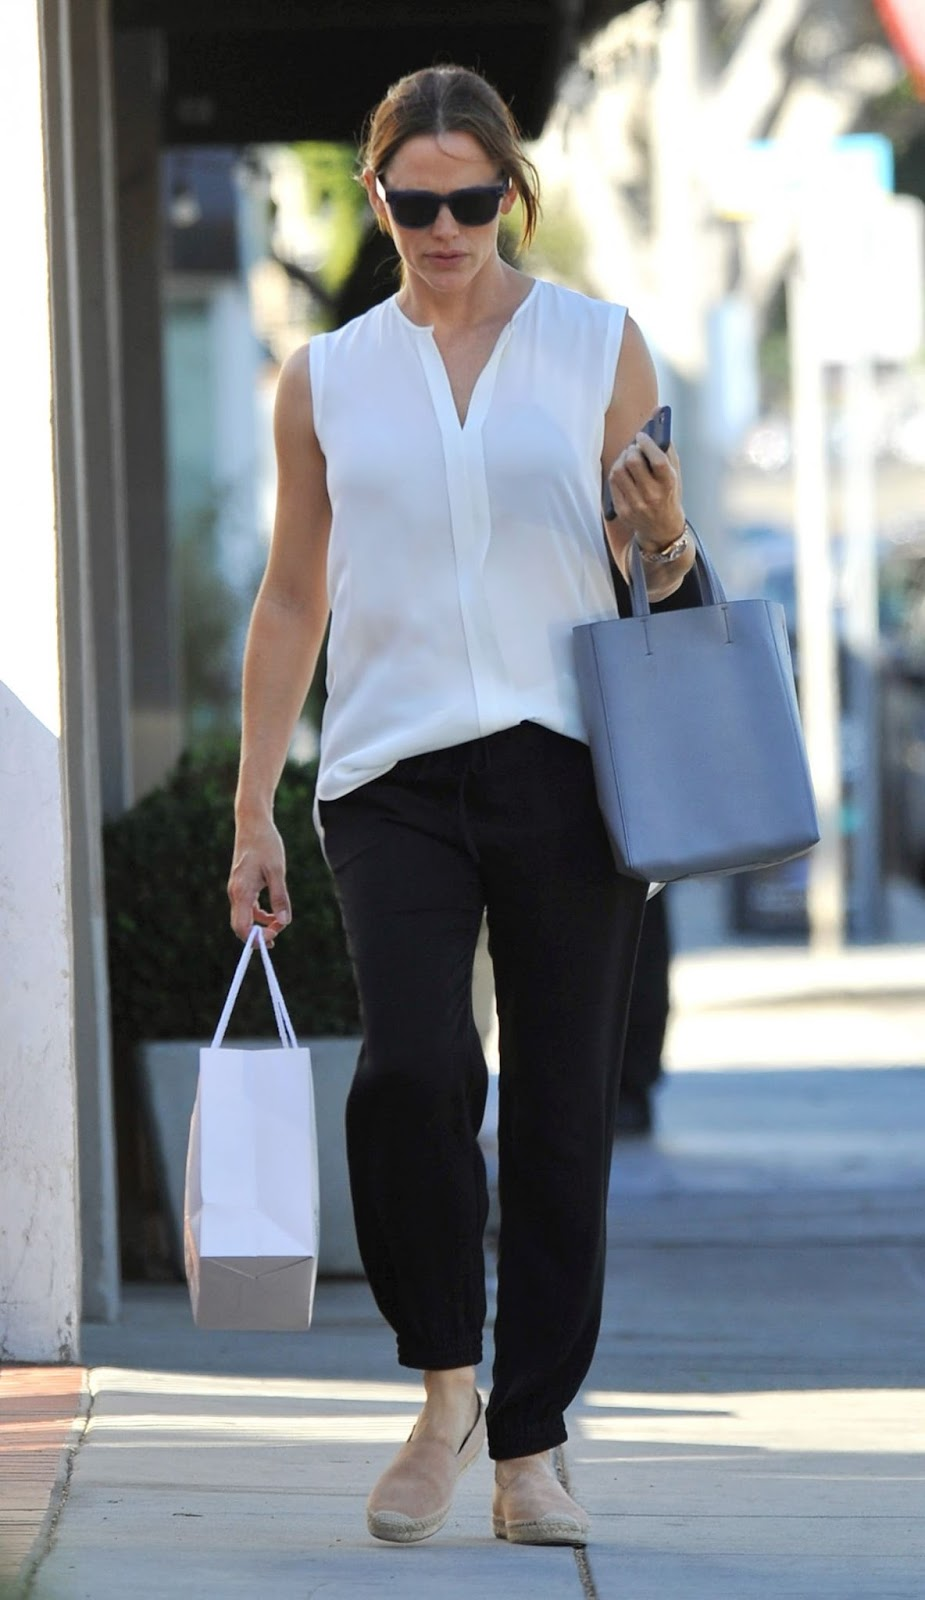 HQ Photos of Jennifer Garner Out Shopping In Los Angeles